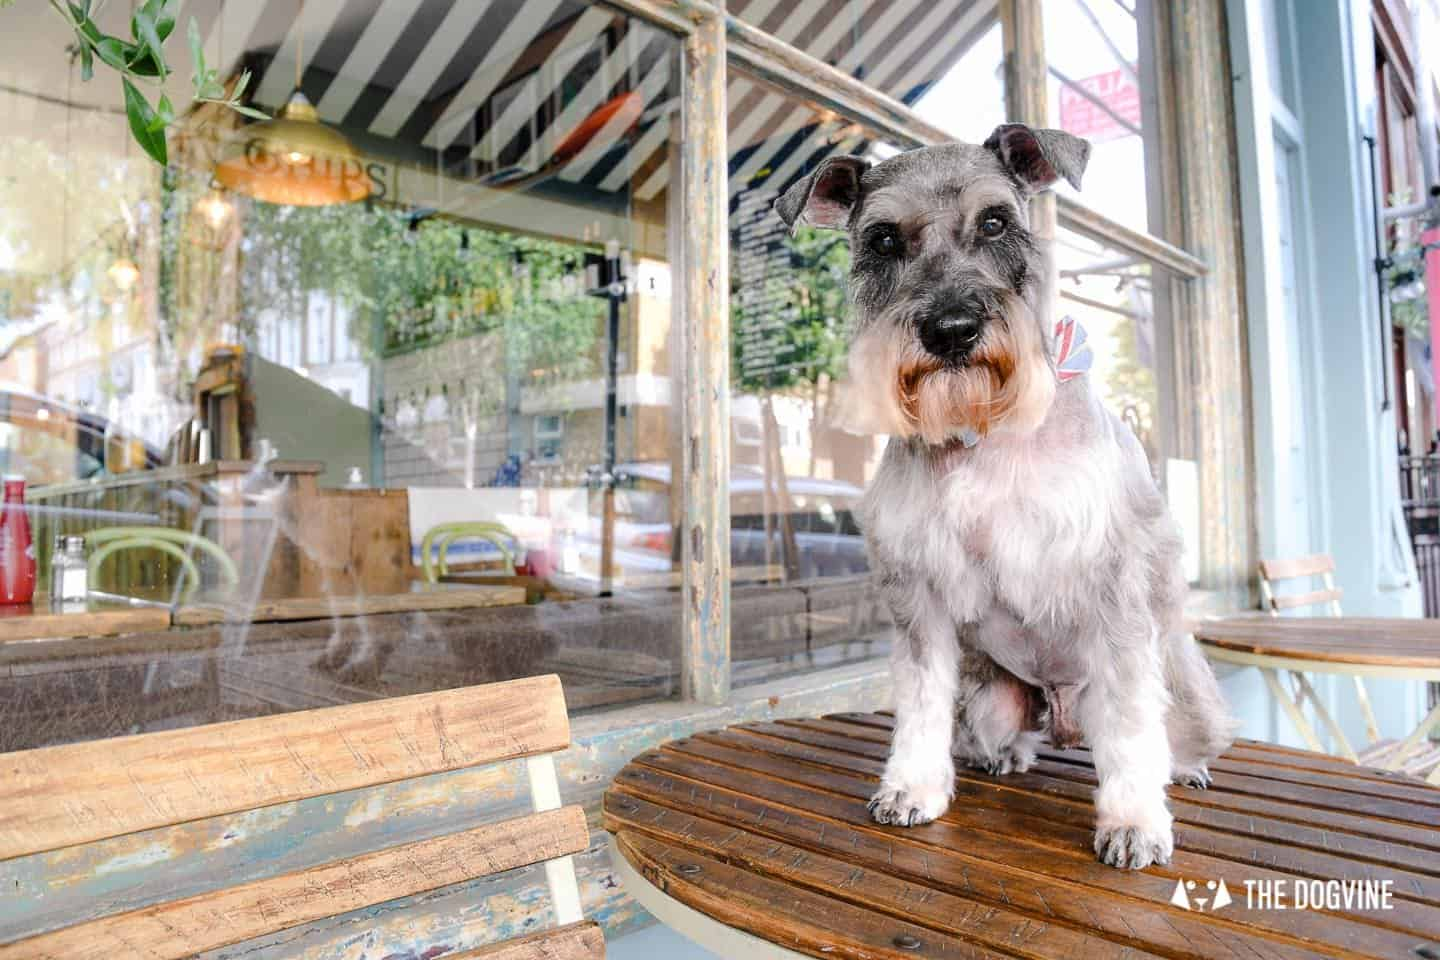 My Dog Friendly London By Pepper Chung the Schnauzer - Dog Friendly Notting Hill 8